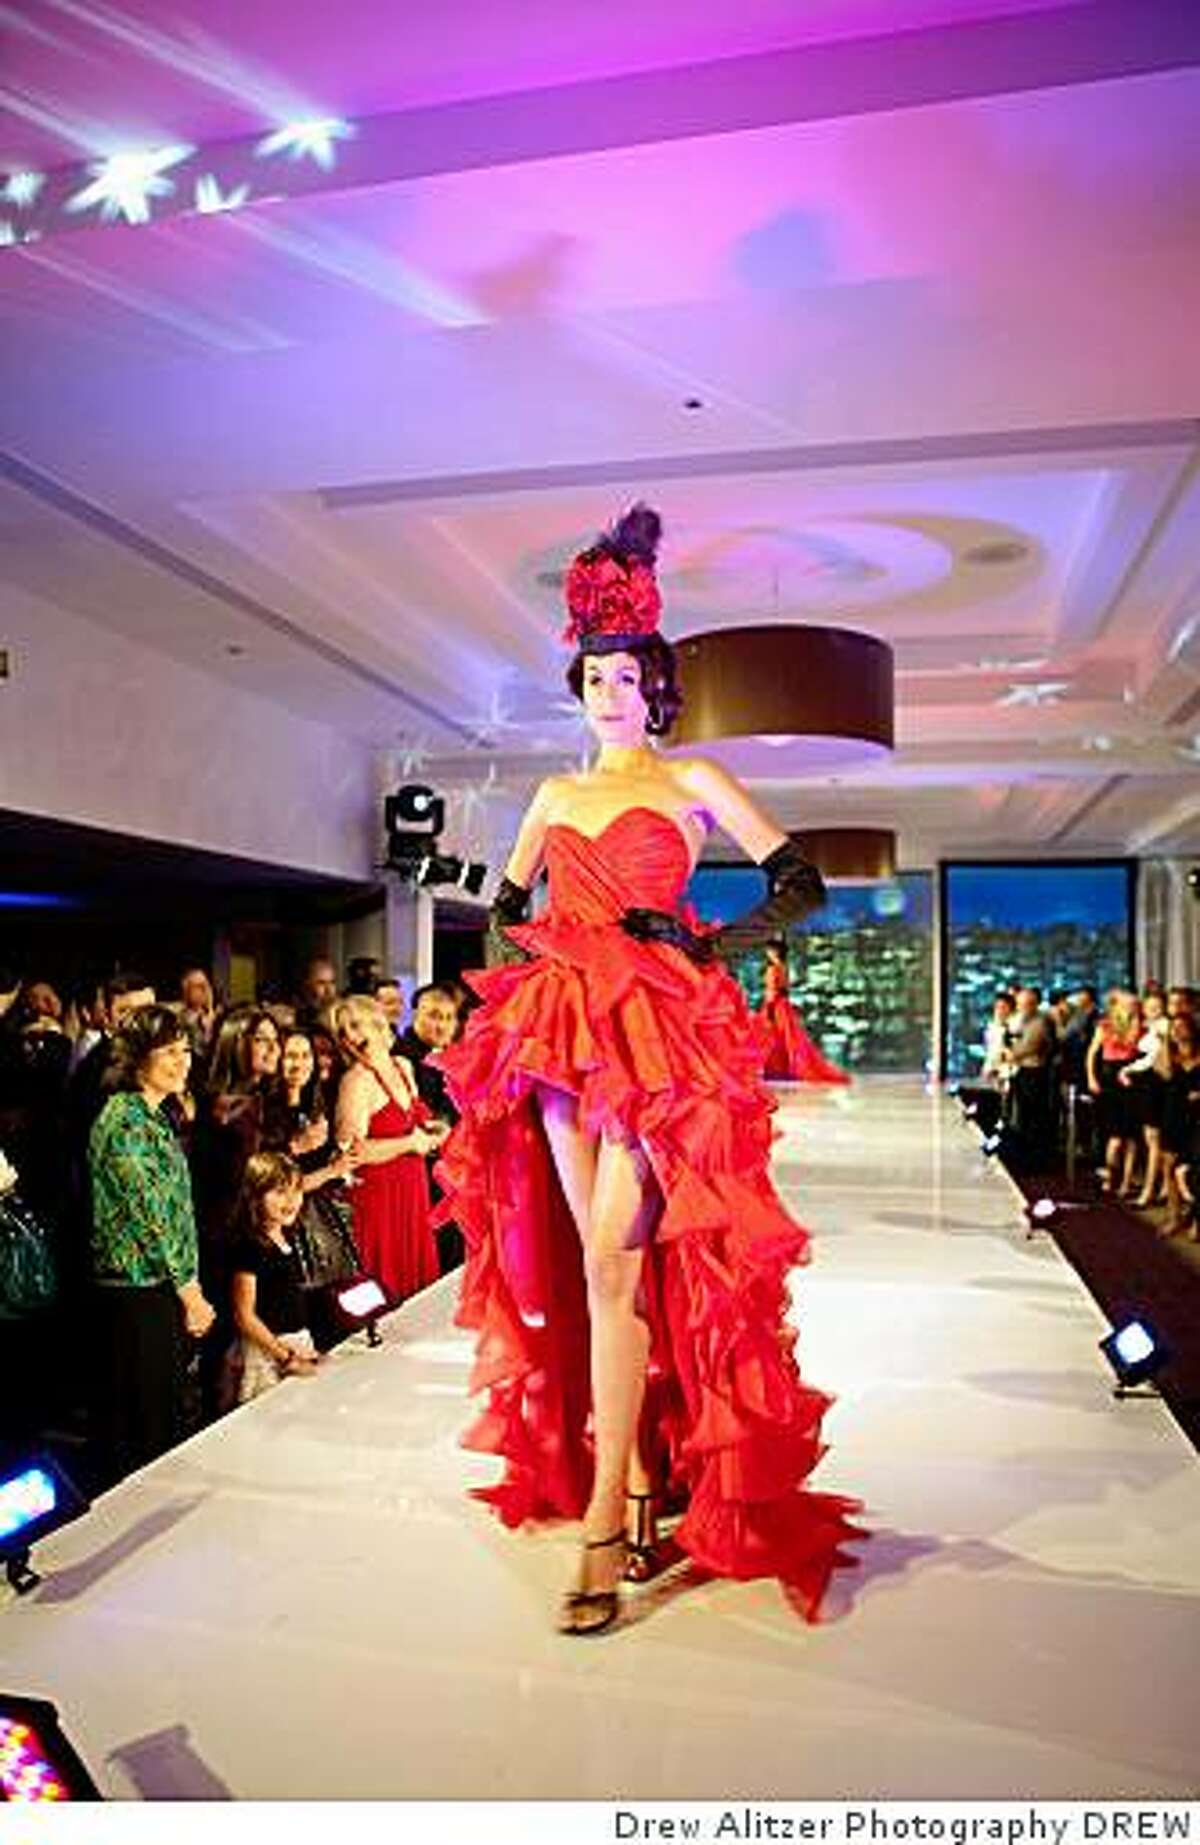 This dramatic red gown was designed by Emily Dumitrescu of Emily Jane Clothing for the Parc 55 Fashionably Loud event.